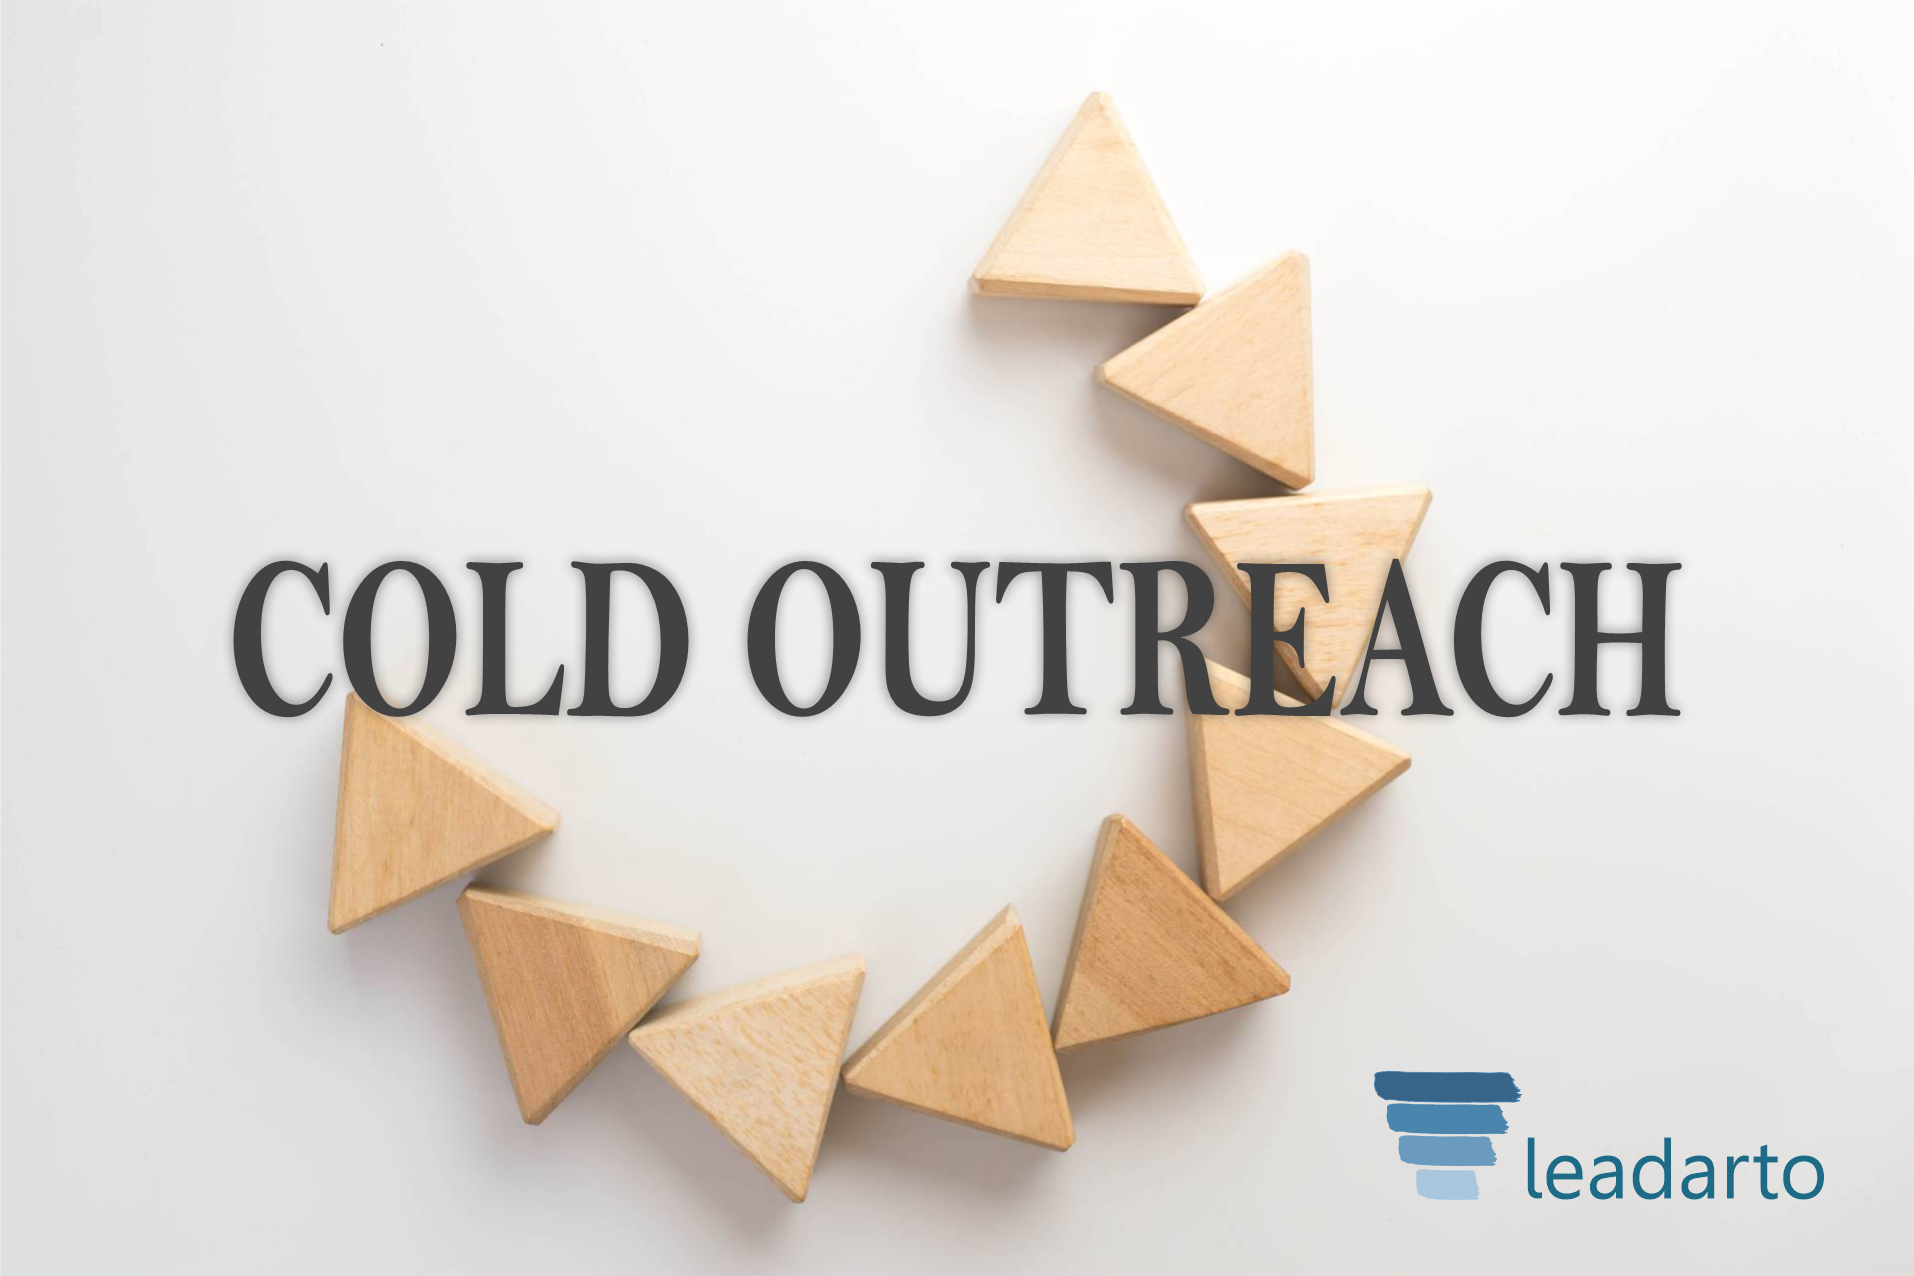 LinkedIn Cold Outreach: How to Write a Powerful Message